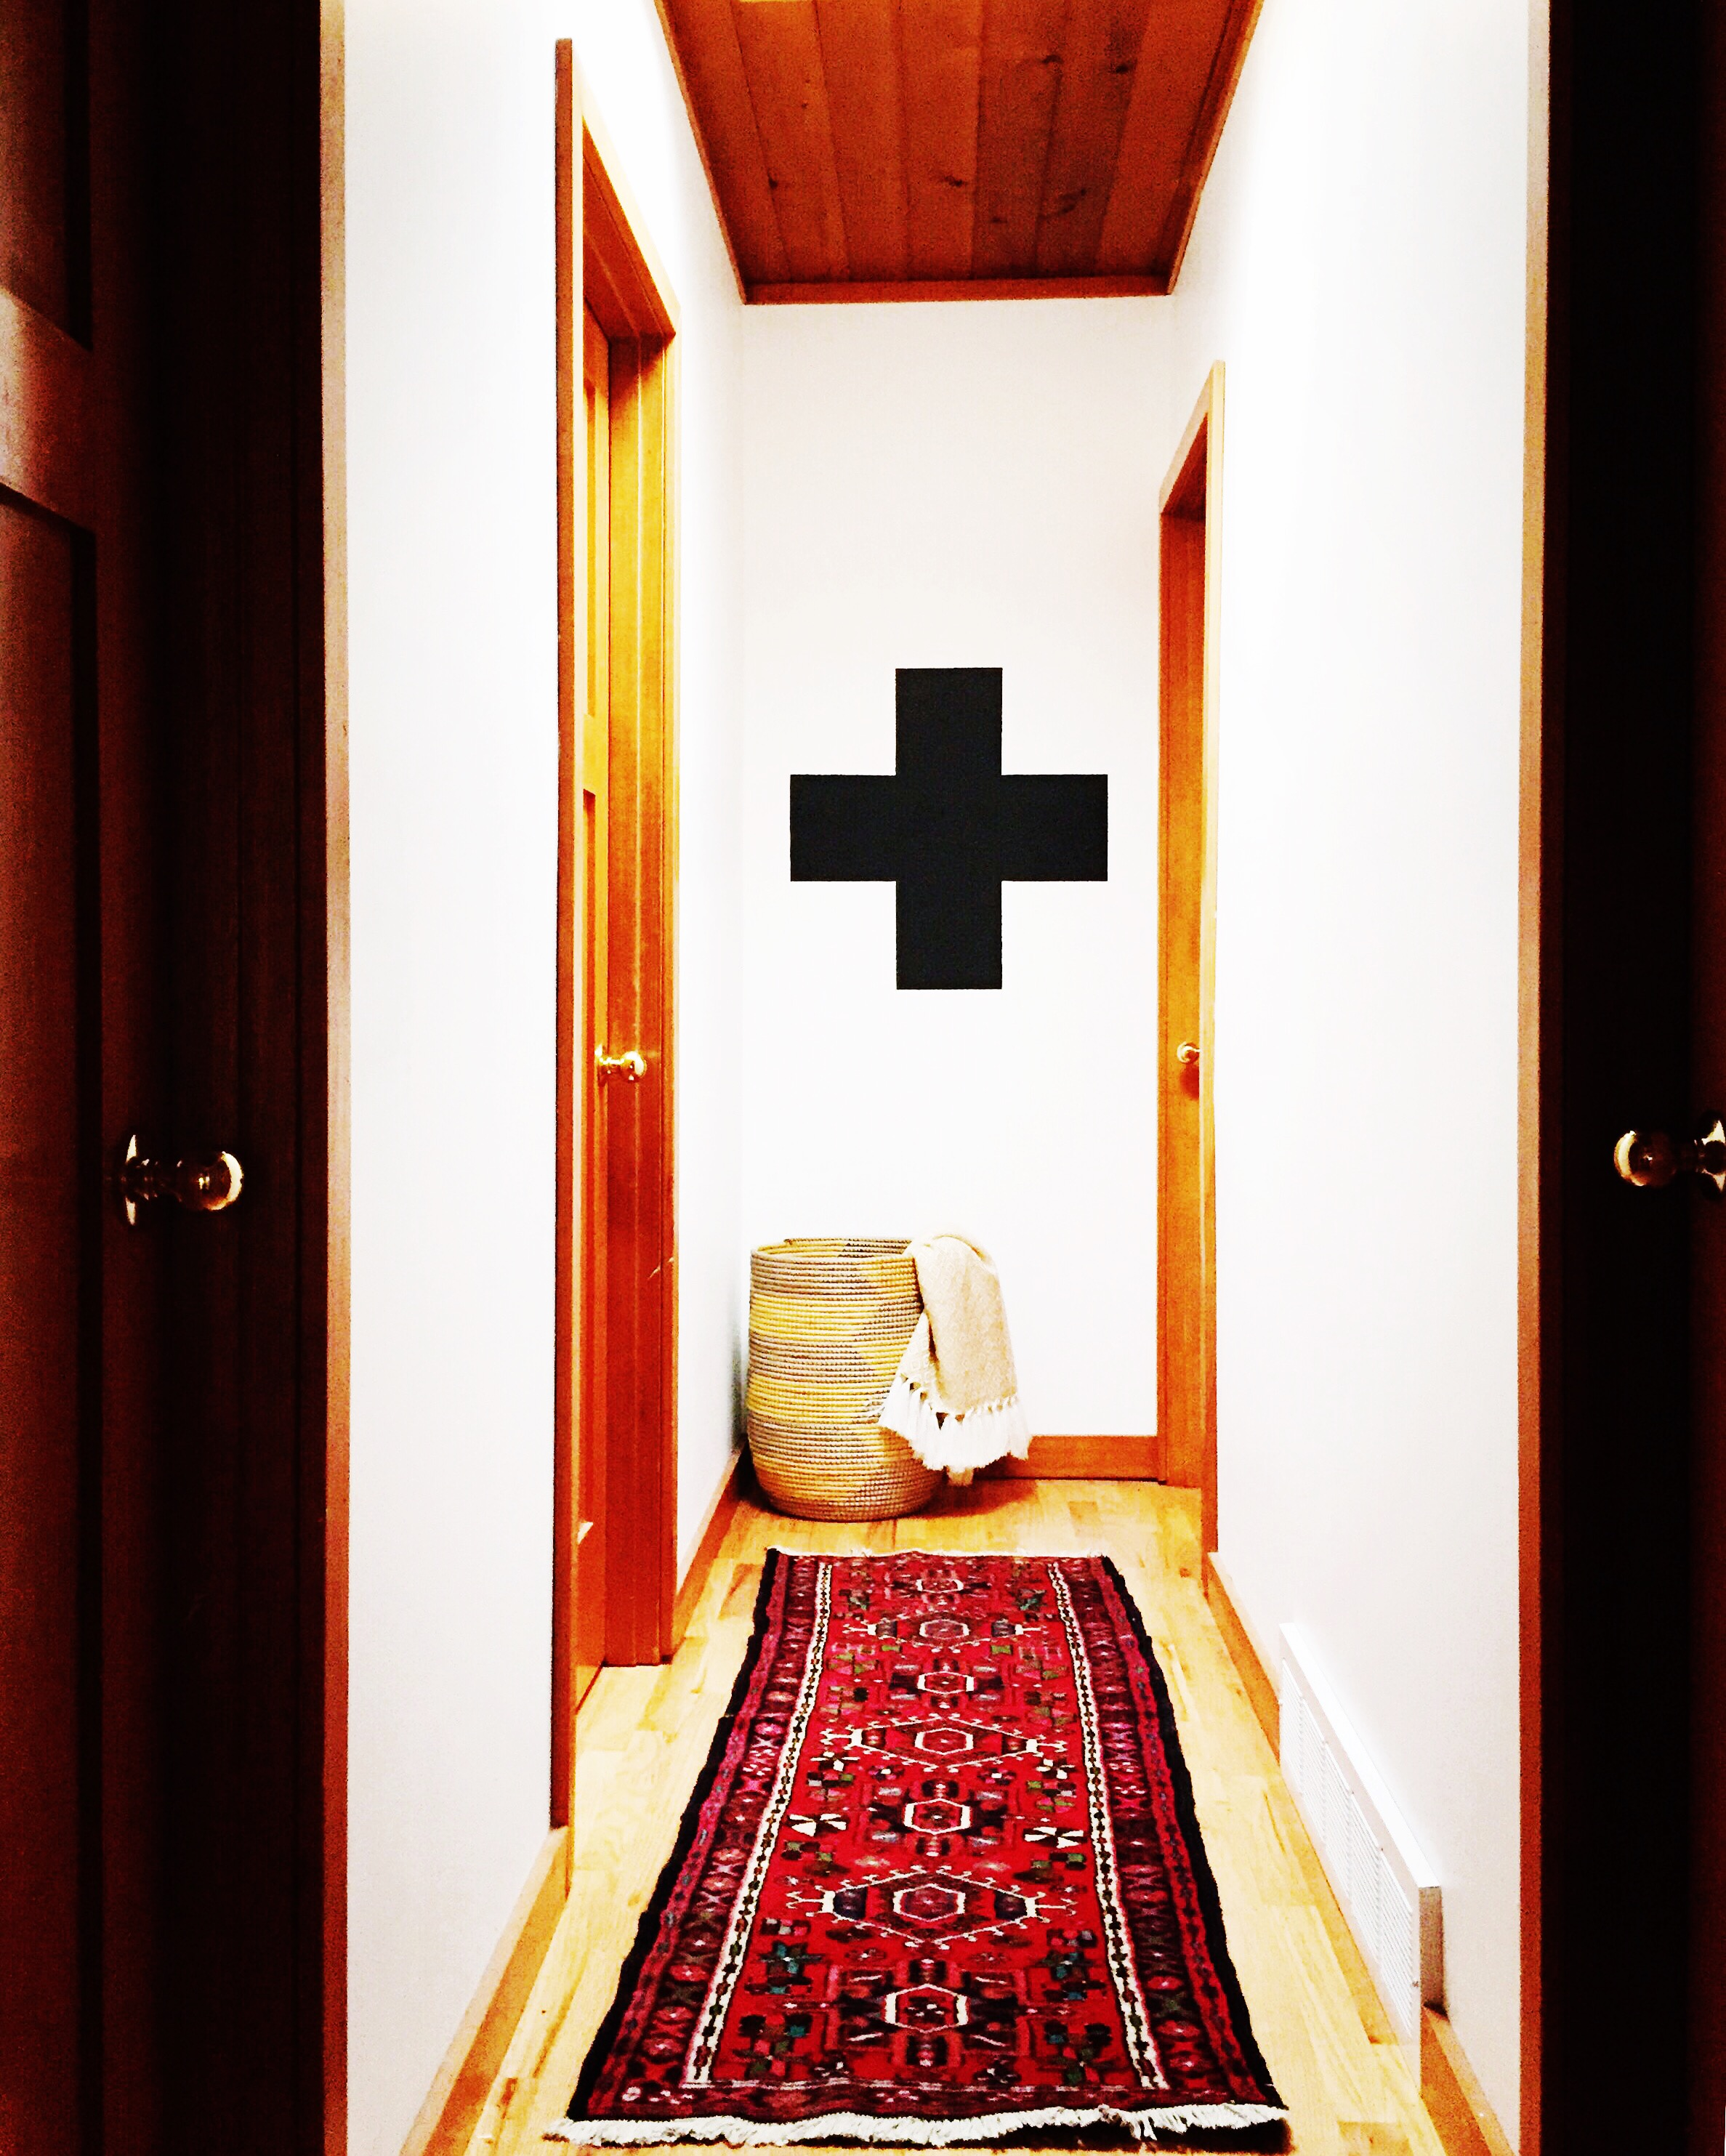 This hallway leads you to the bedrooms. Audrey recently painted this cross on the wall & wasn't sure if her husband would like it. He came home from work & helped her measure to make sure it was perfect. True DIY love people!